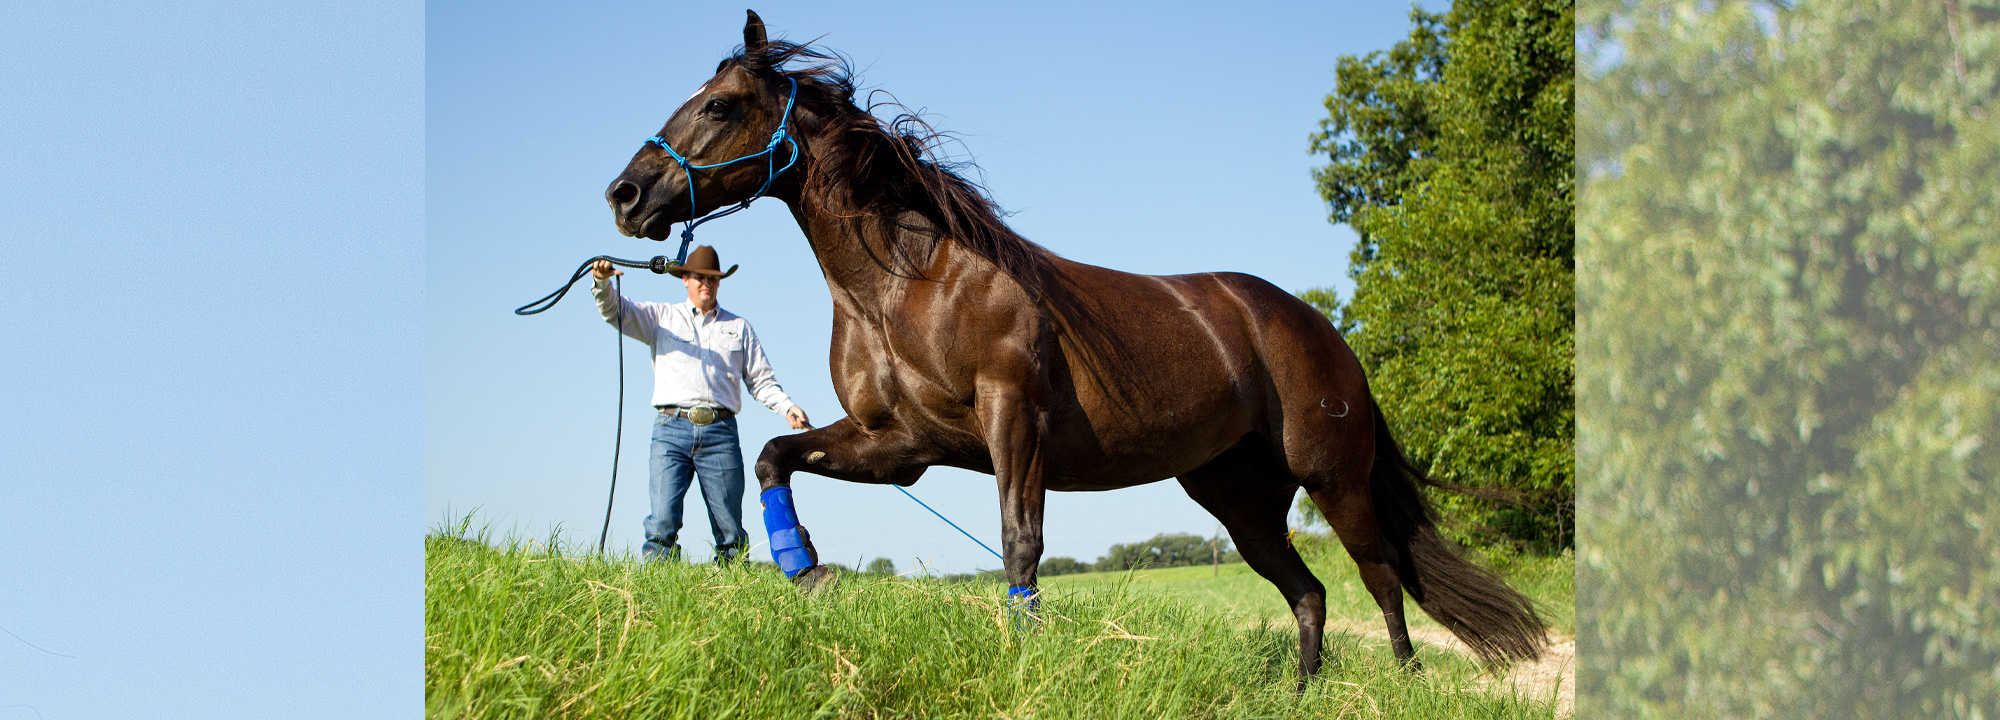 Training Tip: Ask Clinton: A Bit or Hackamore? | Downunder